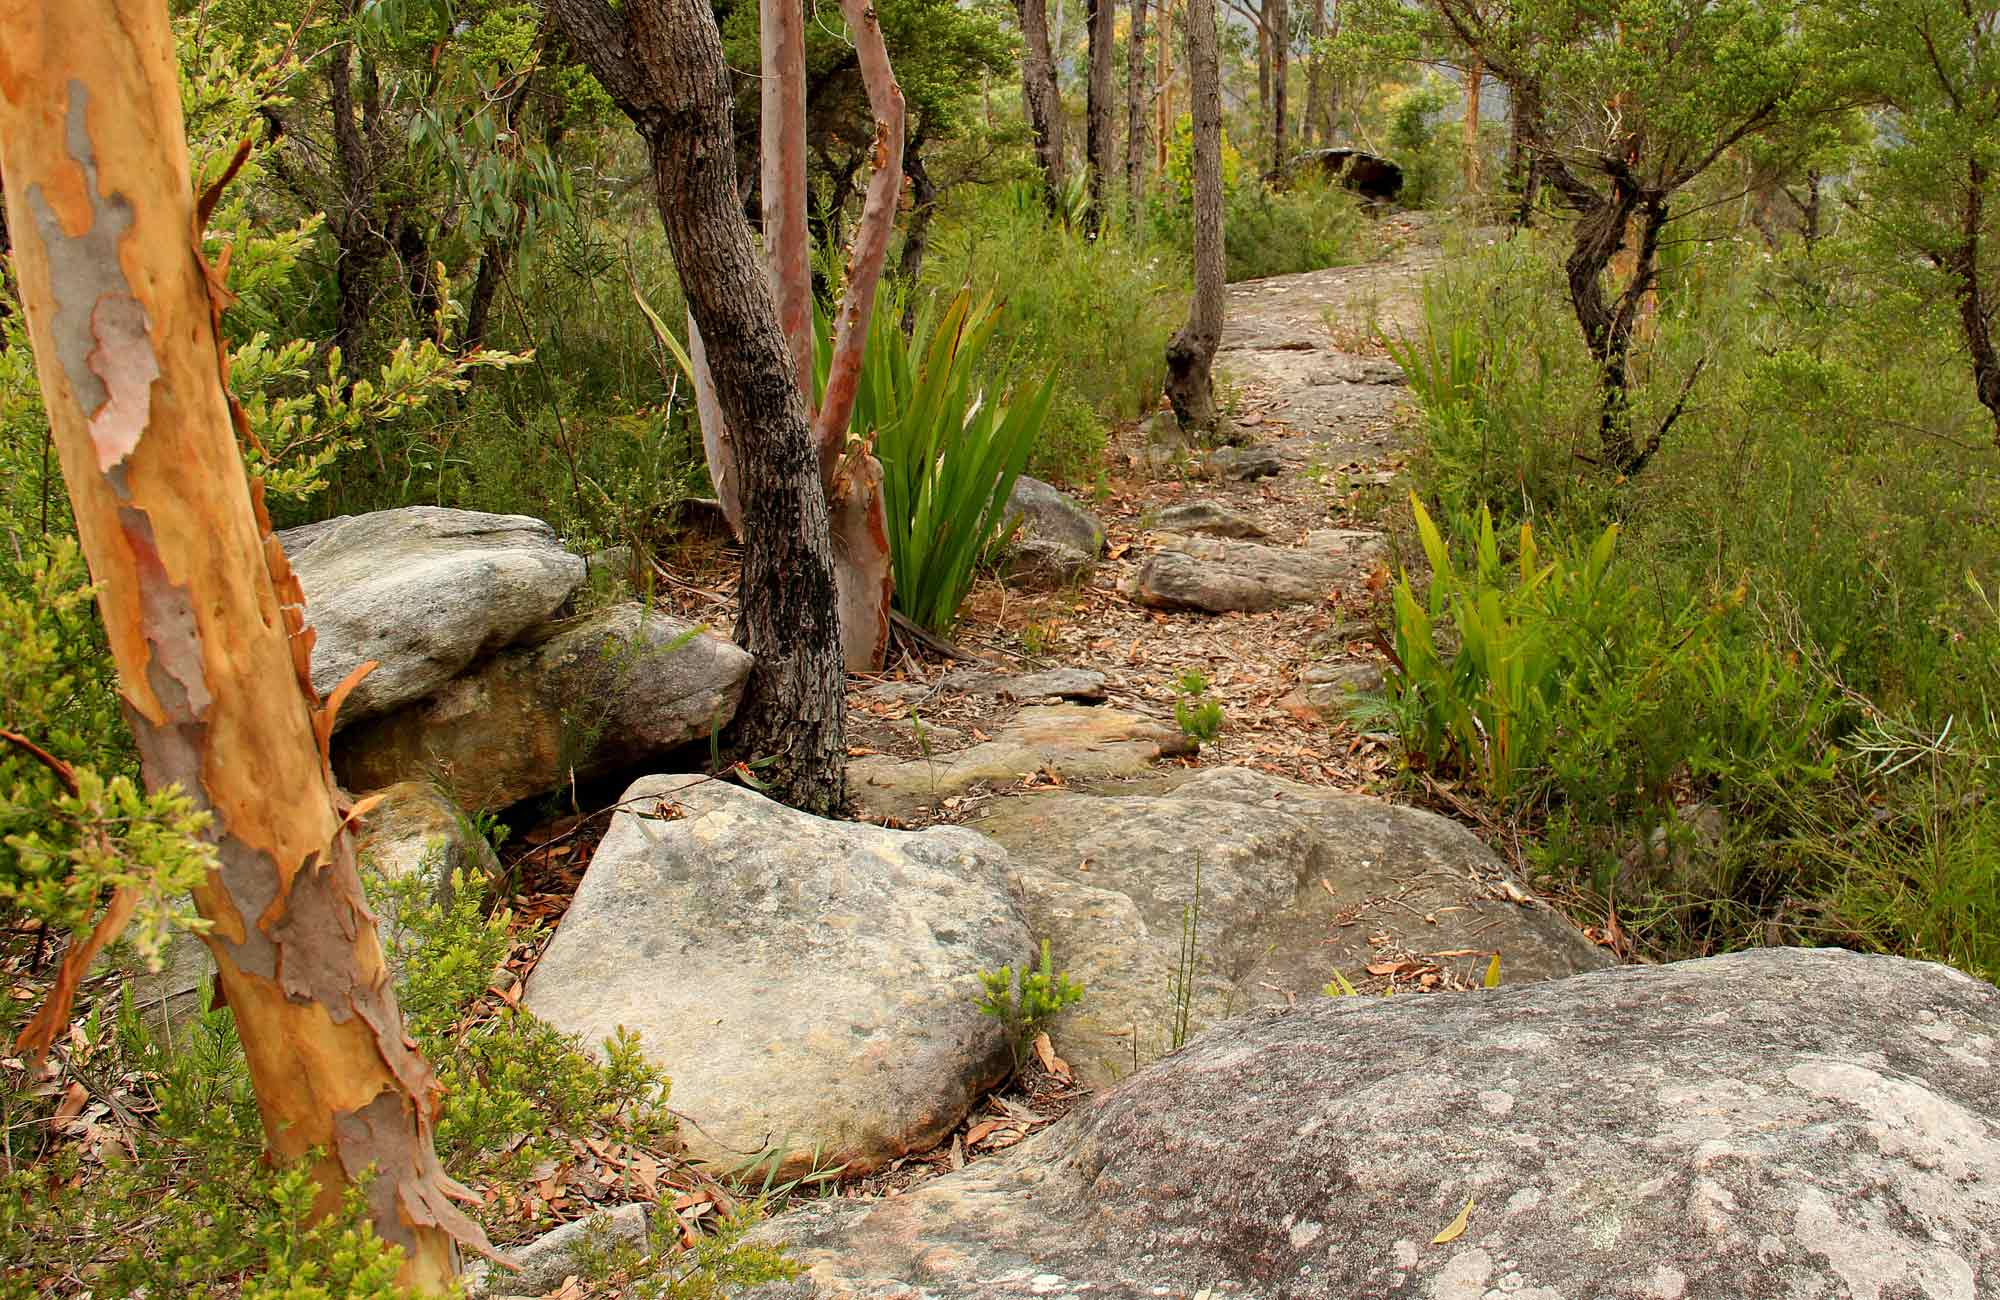 Mount Olive Track, Popran National Park. Photo: John Yurasek